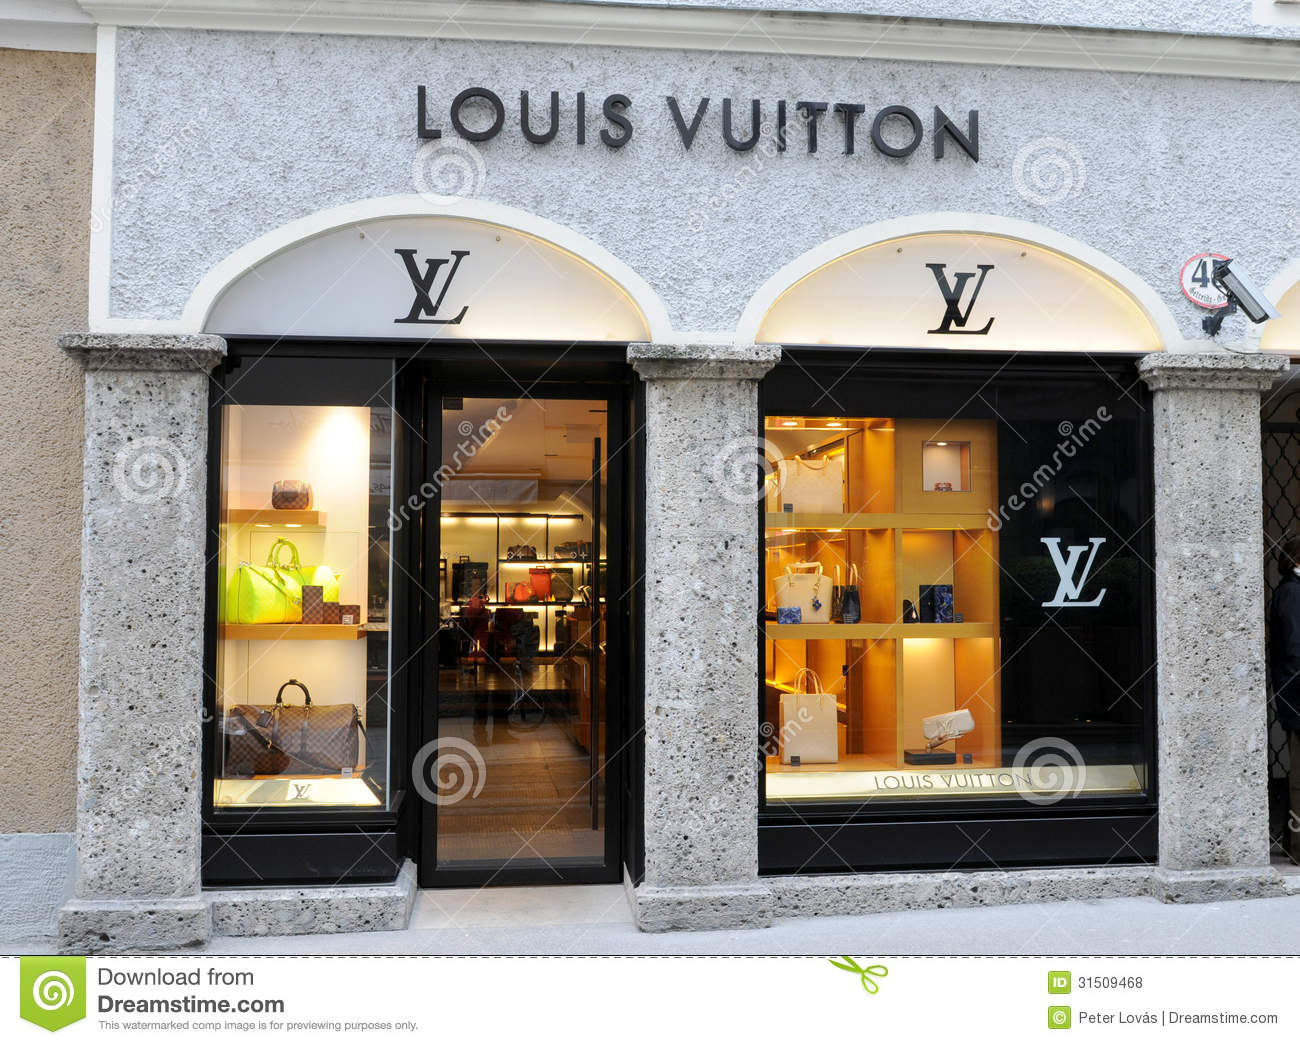 b397ed11941 Louis Vuitton Shop In Salzburg Editorial Stock Photo - Image of ...